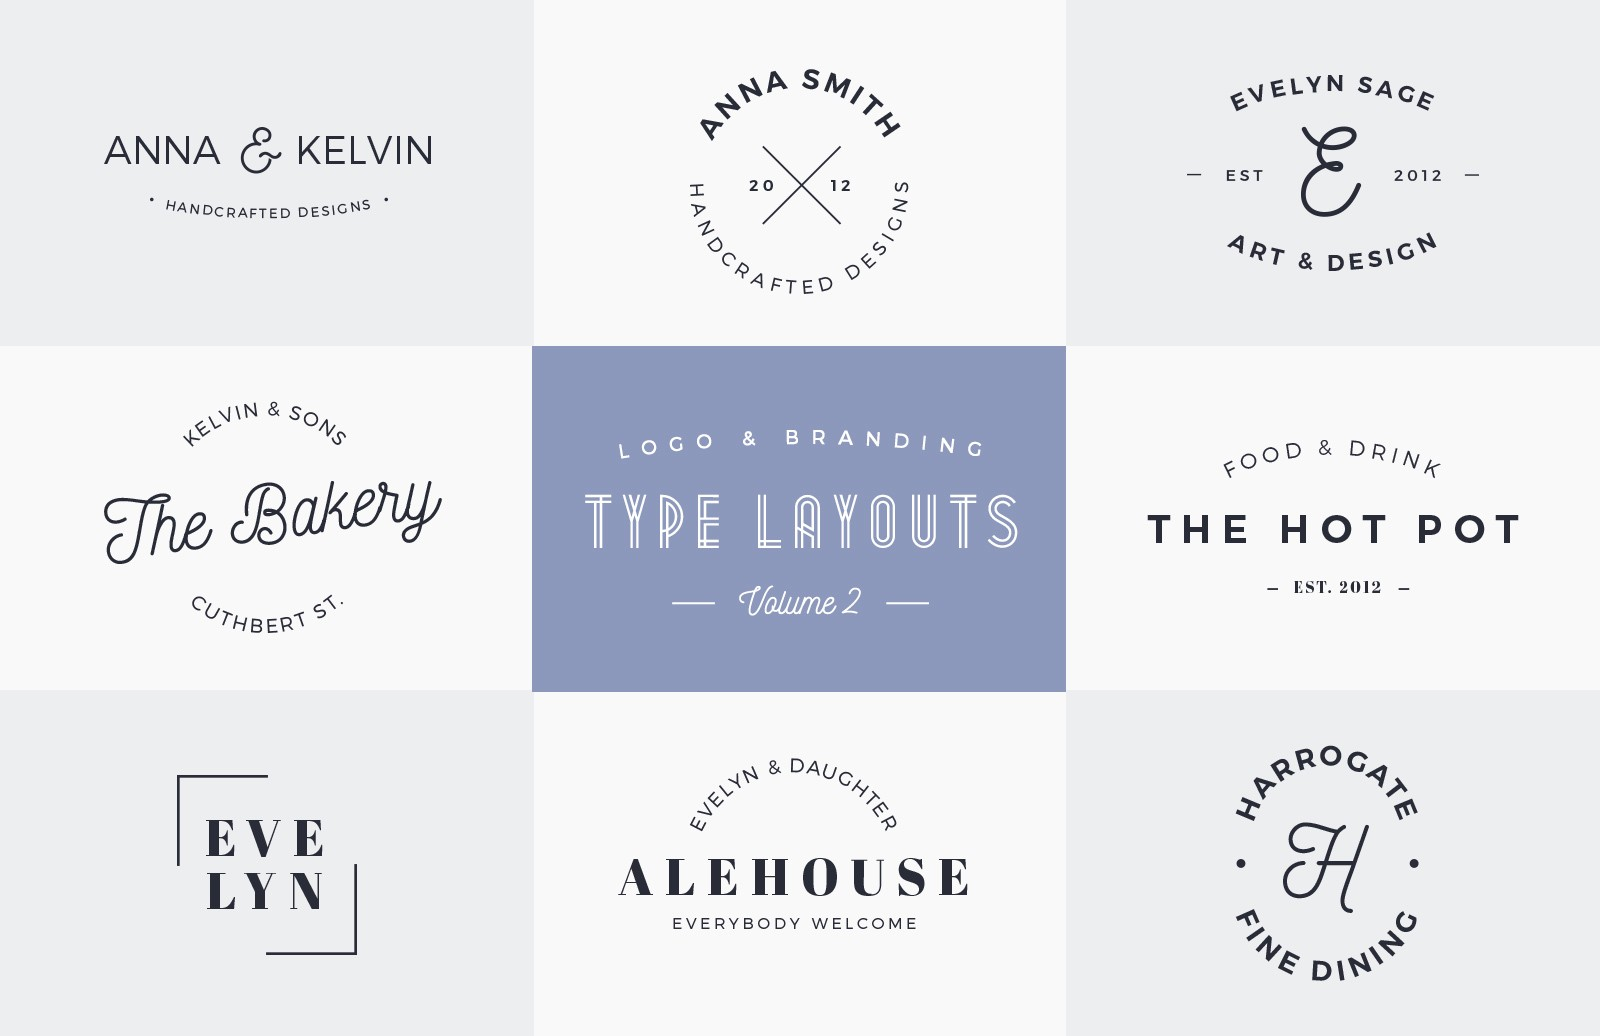 Logo & Branding Type Layouts - Vol 2